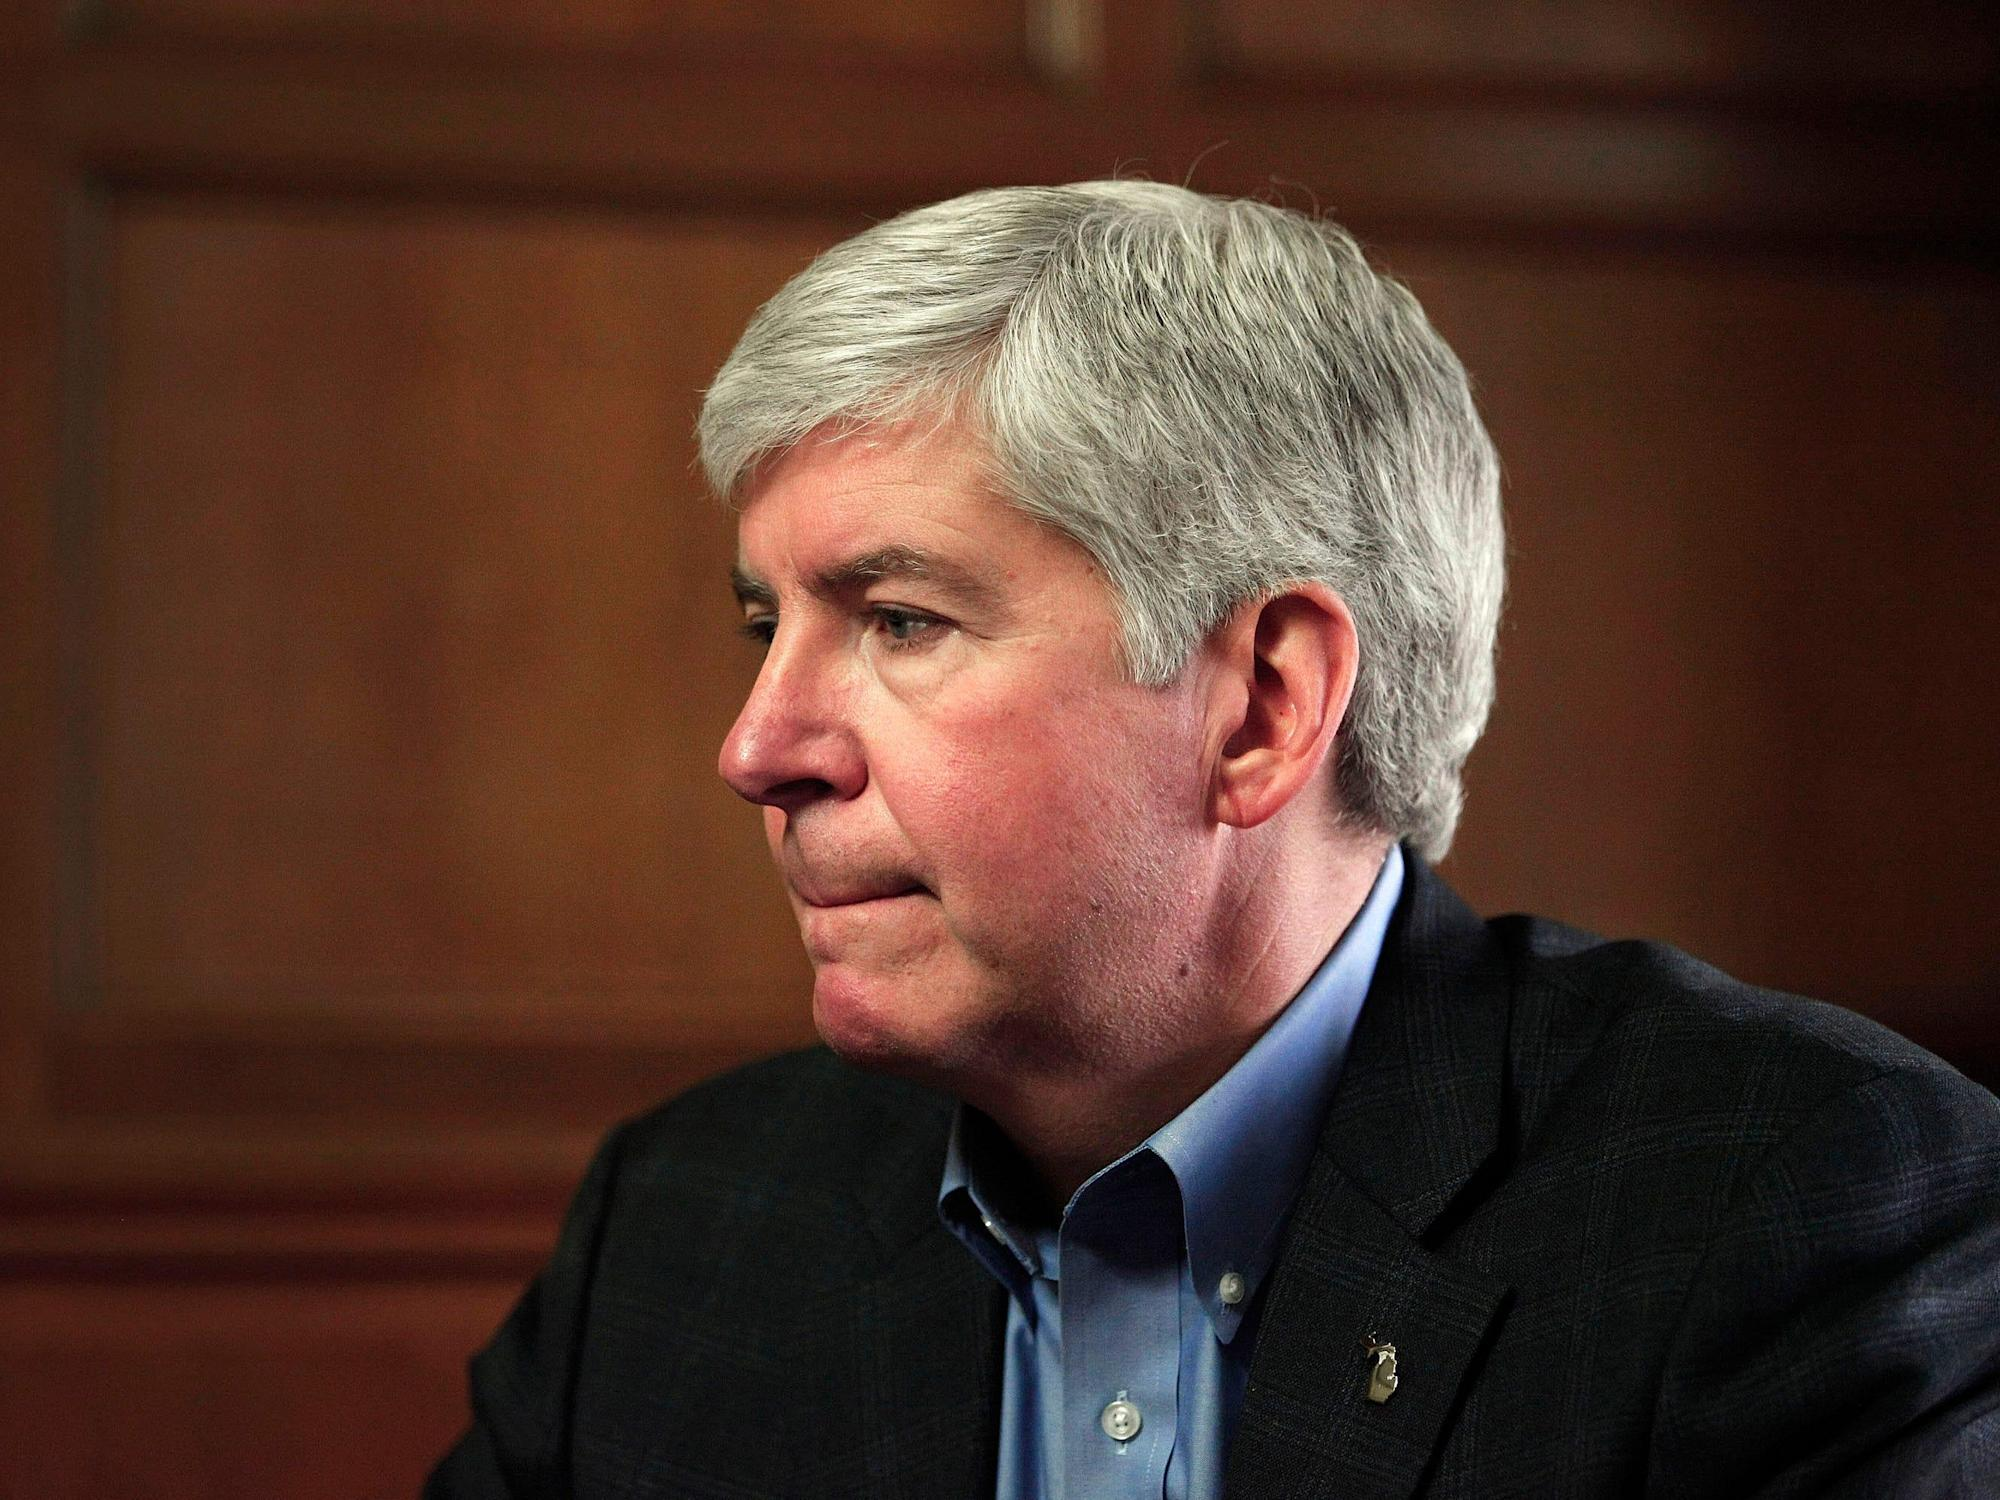 Former Michigan Gov. Rick Snyder has been criminally charged with willful neglect in connection with the Flint water crisis, report says